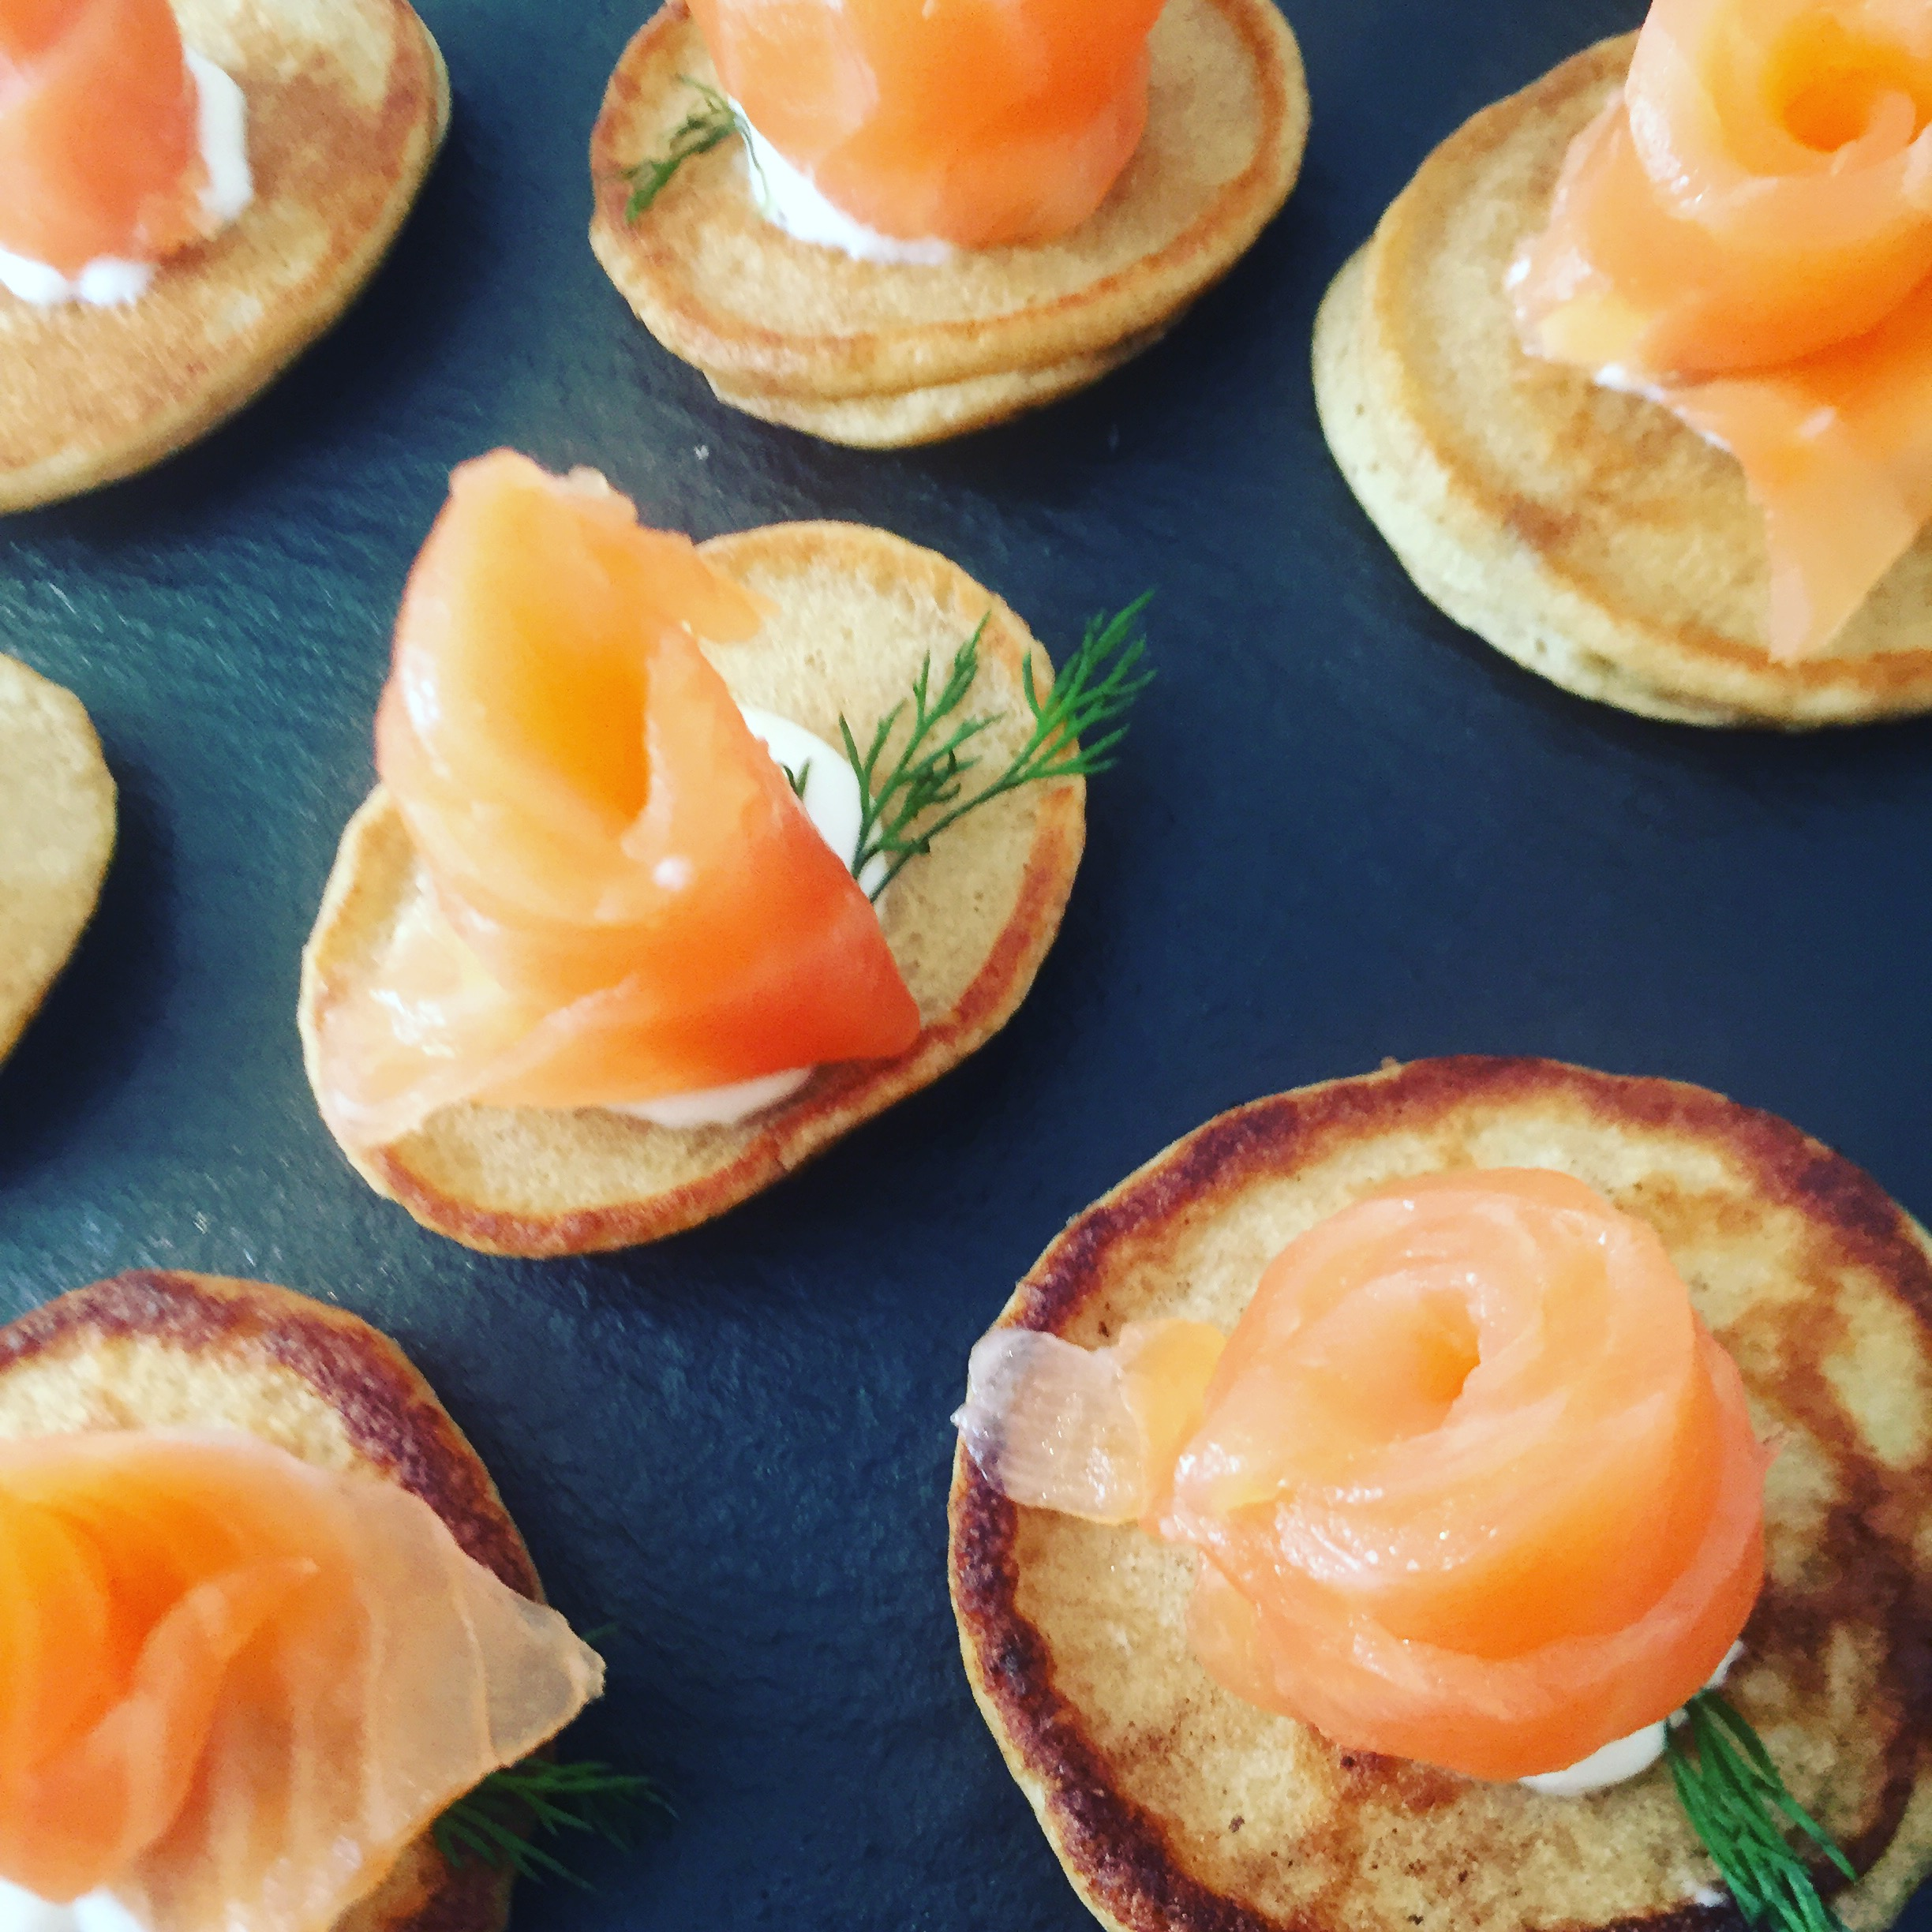 """This most excellent canapé..."": Smoked Salmon Roses, Caraway Blinis, Horseradish Crème Fraîche, Dill"